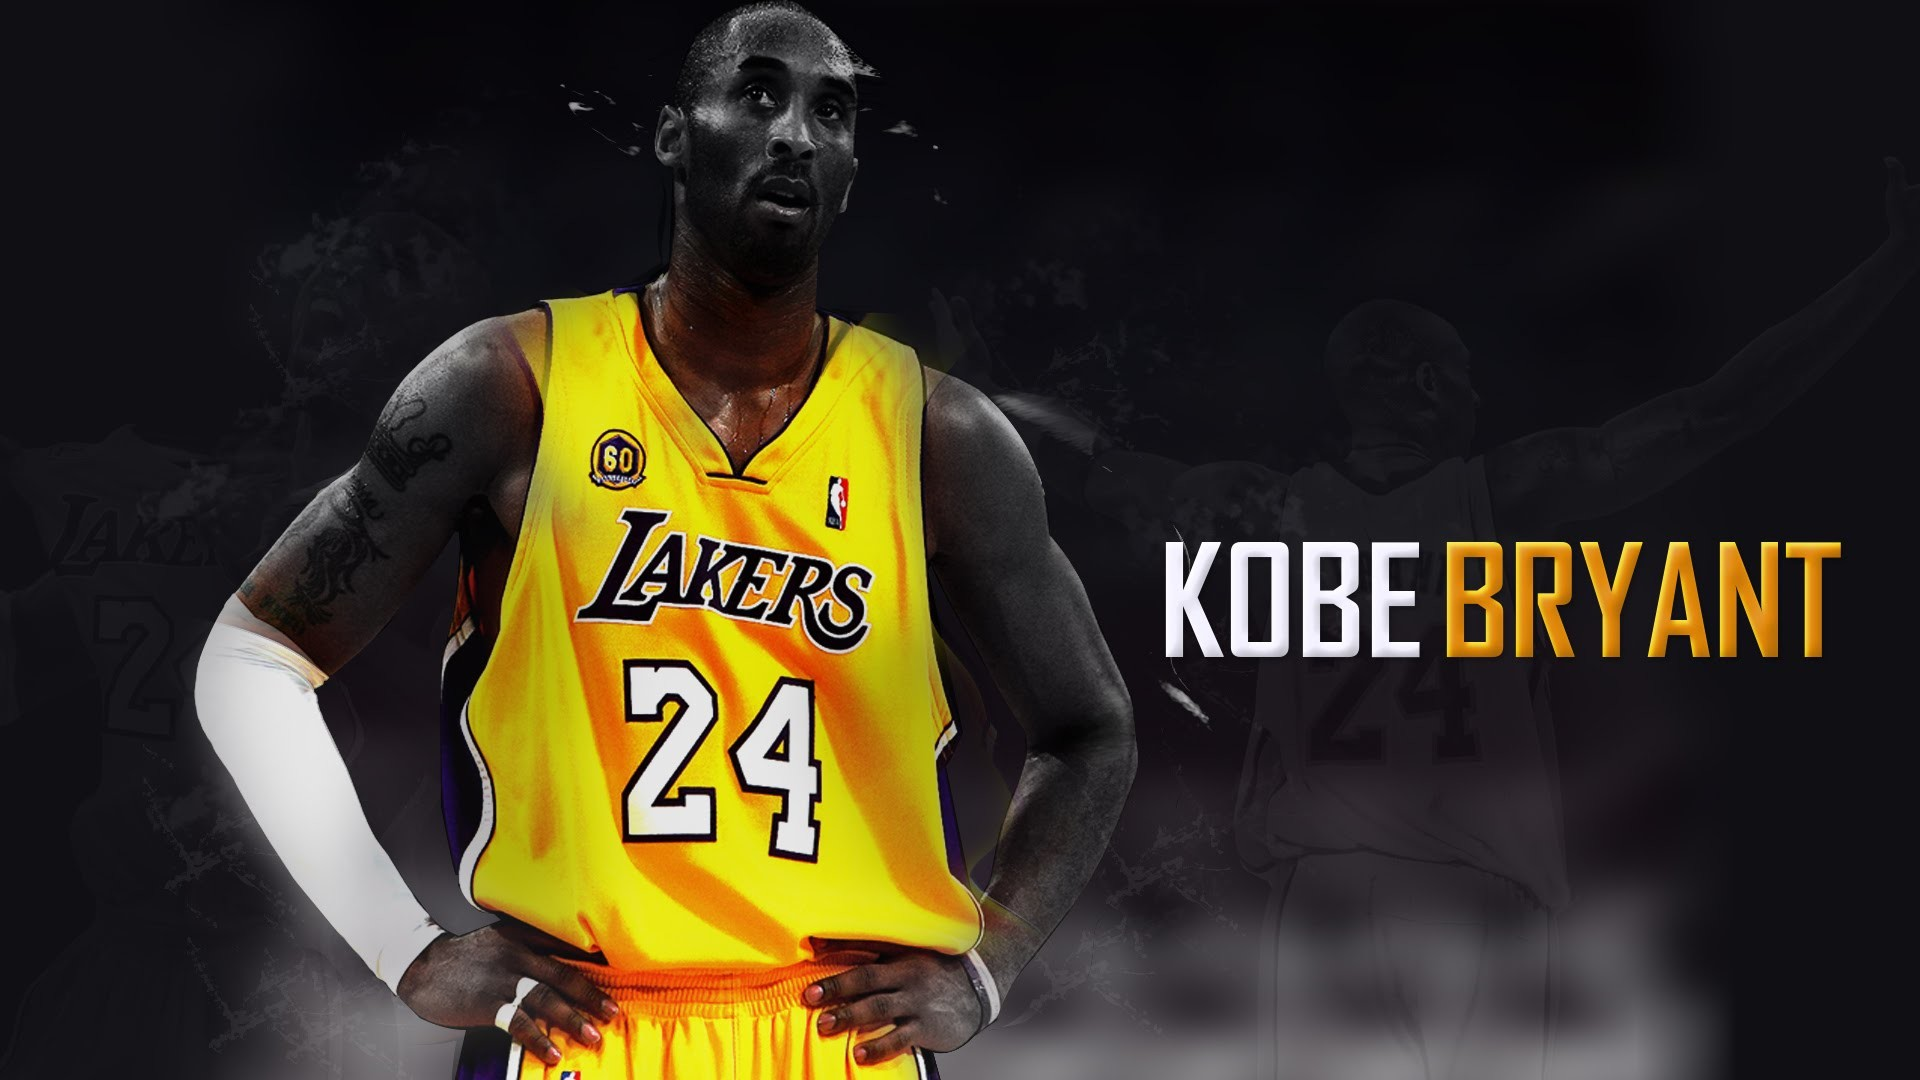 1920x1080 Kobe Bryant Wallpaper 24